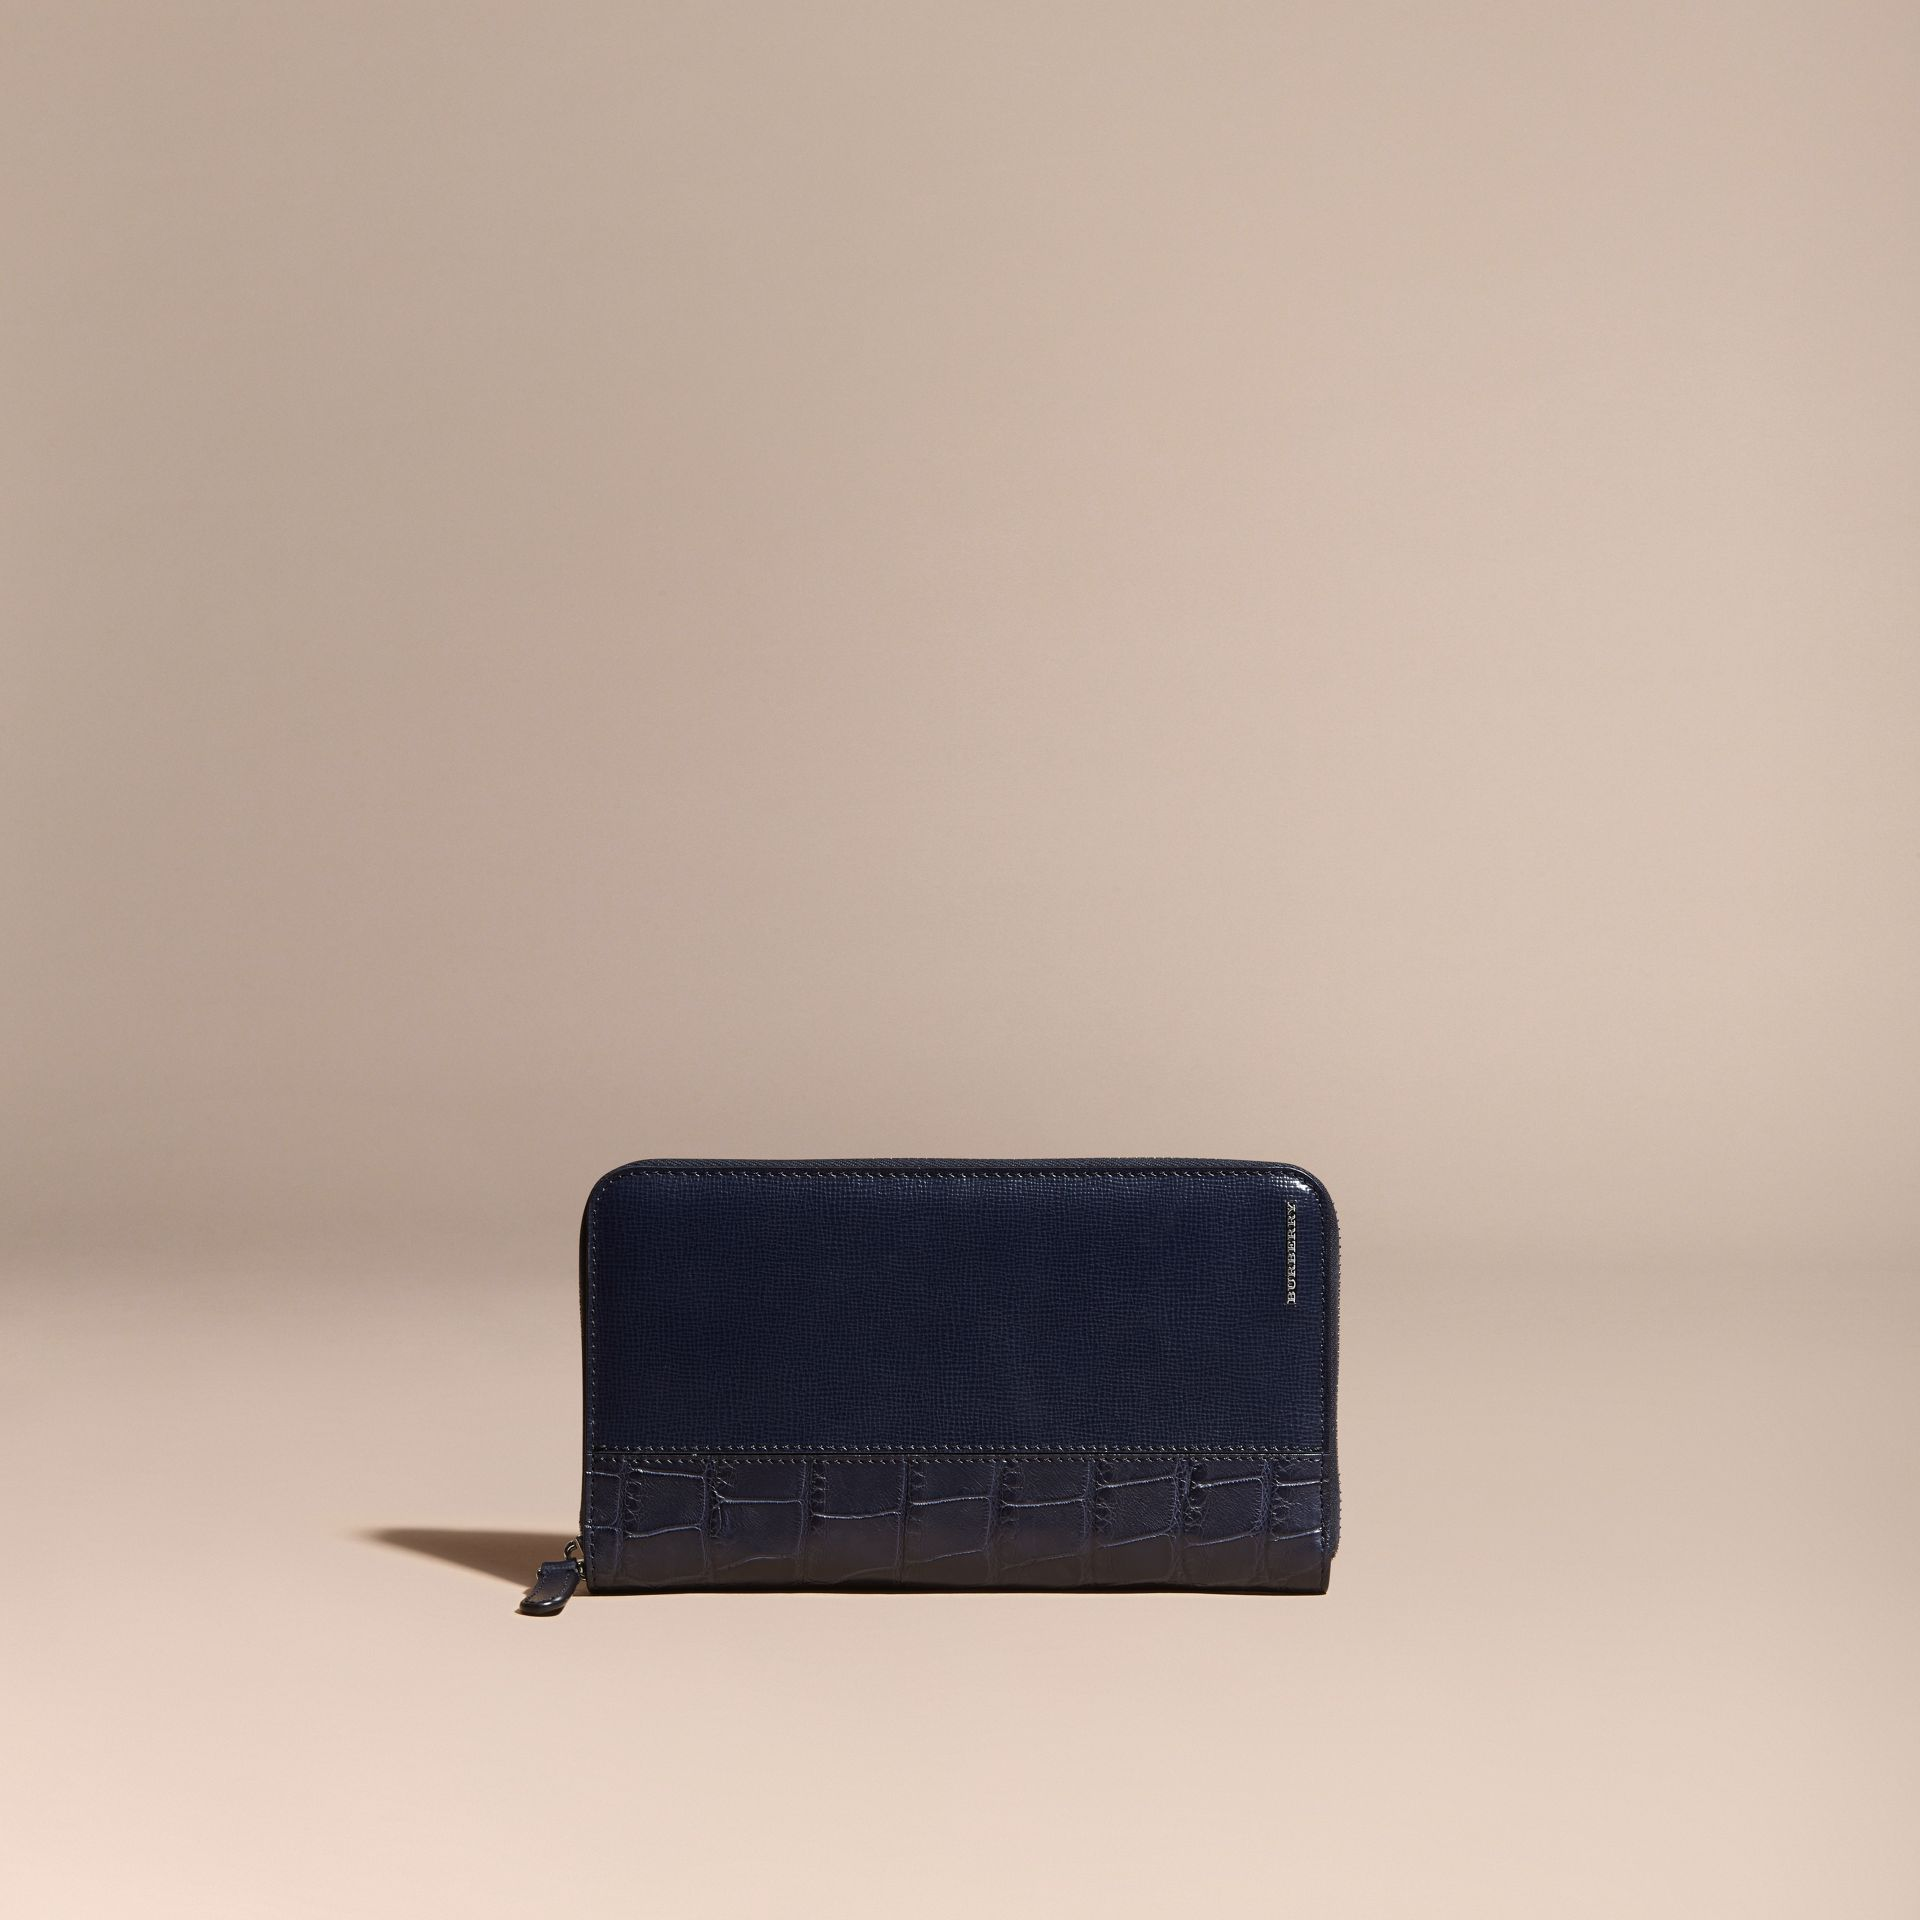 London Leather and Alligator Ziparound Wallet in Dark Navy - Men | Burberry Canada - gallery image 5